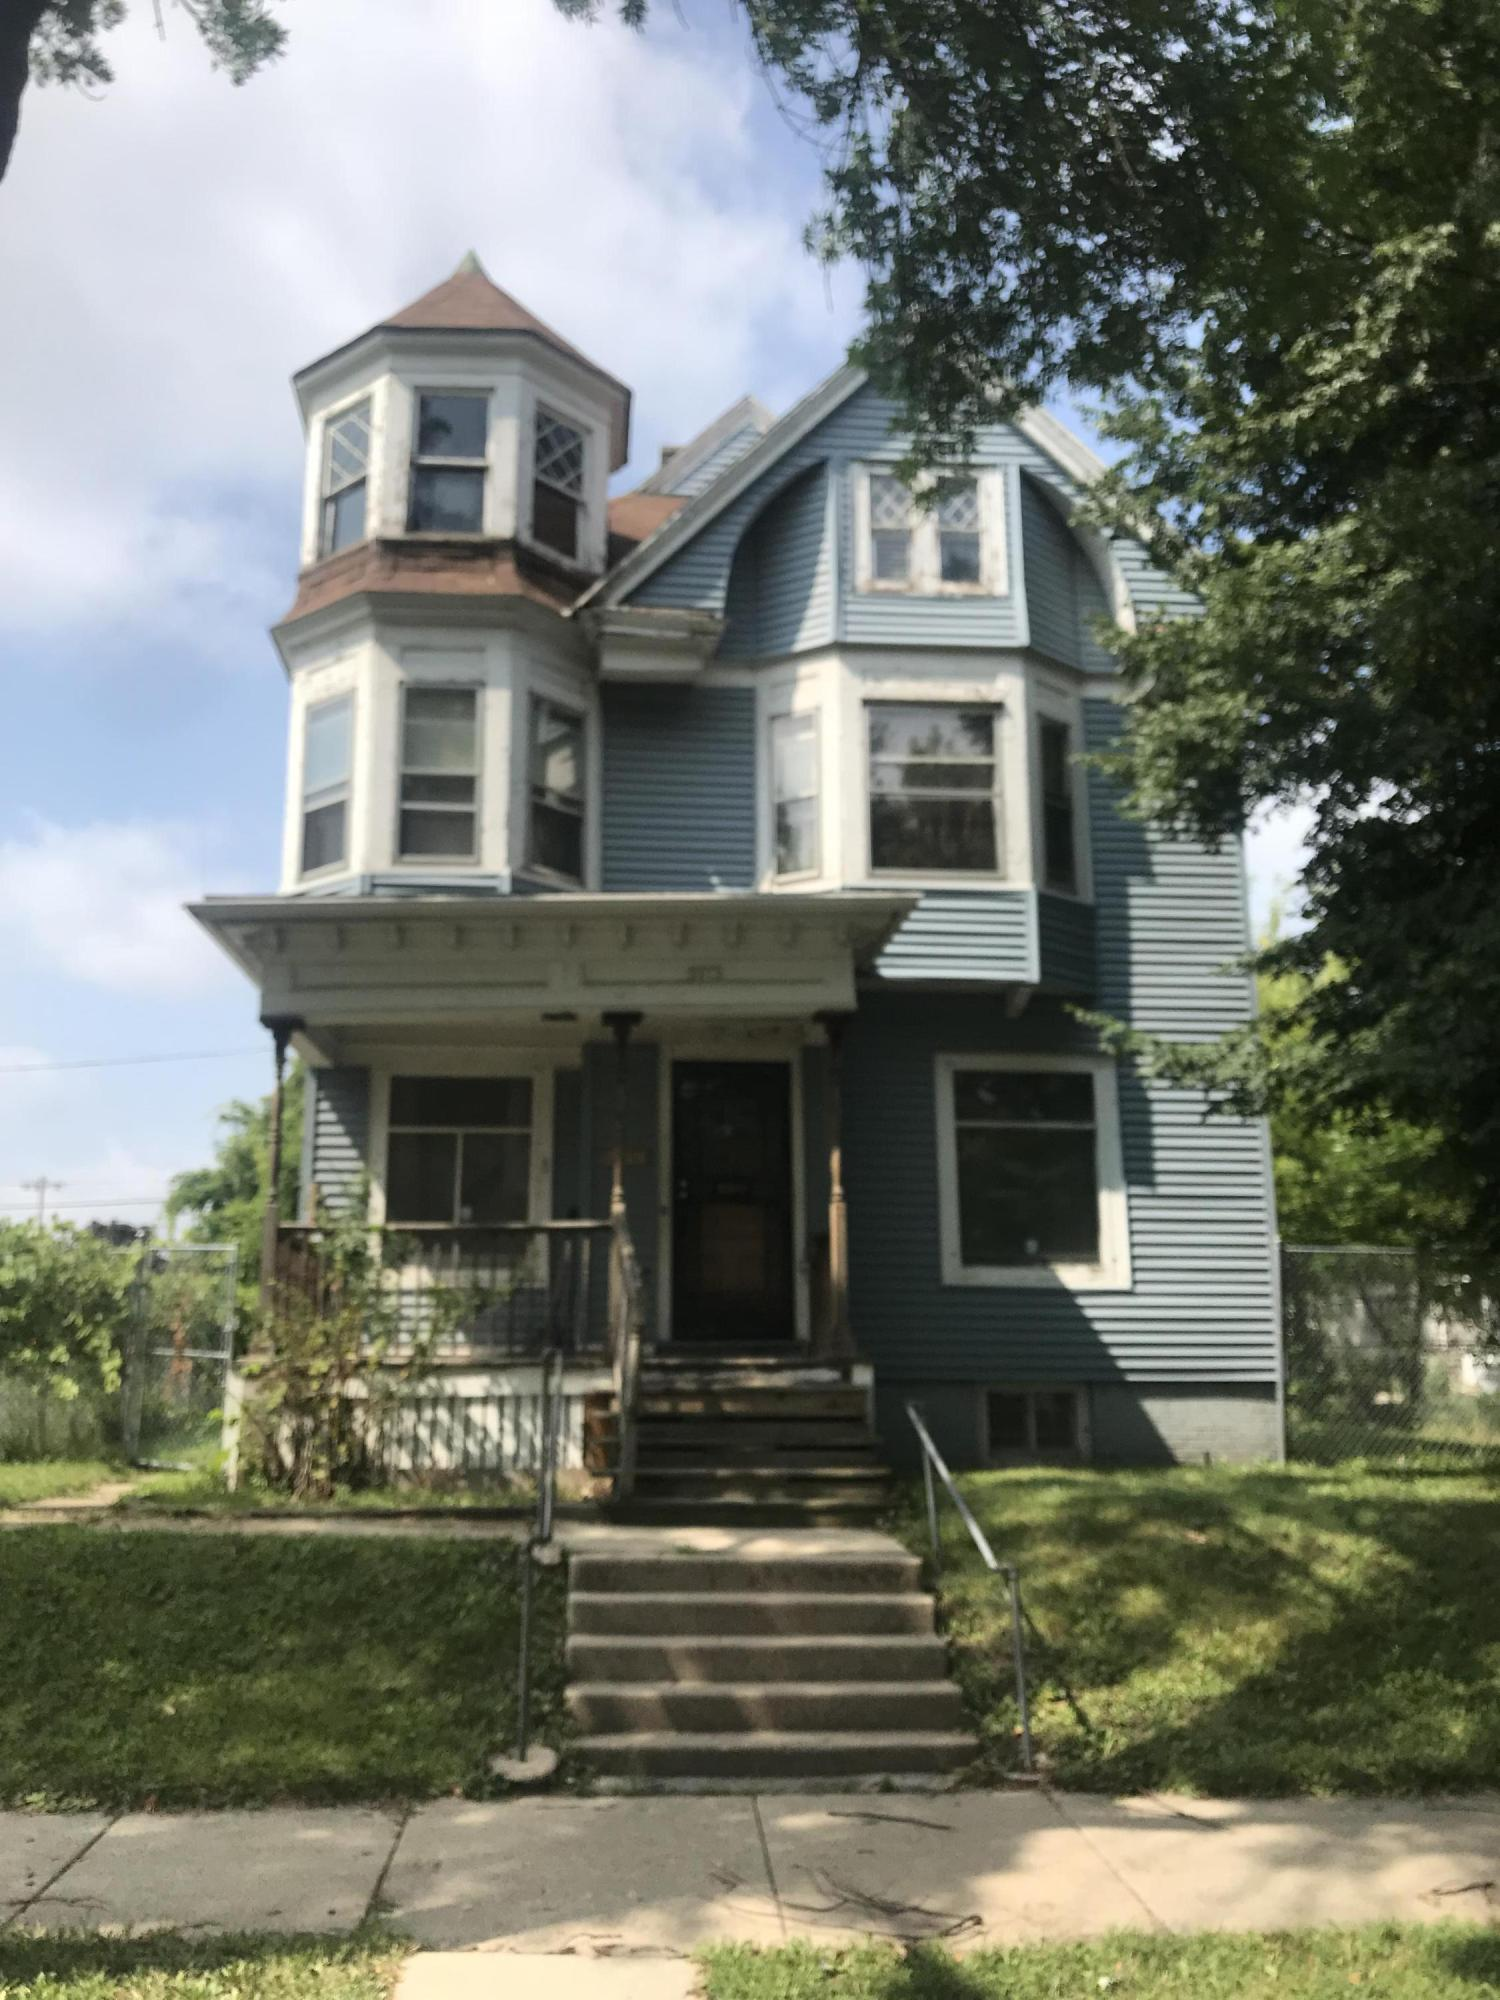 2013 28th St, Milwaukee, Wisconsin 53208, 6 Bedrooms Bedrooms, ,2 BathroomsBathrooms,Single-Family,For Sale,28th St,1619497